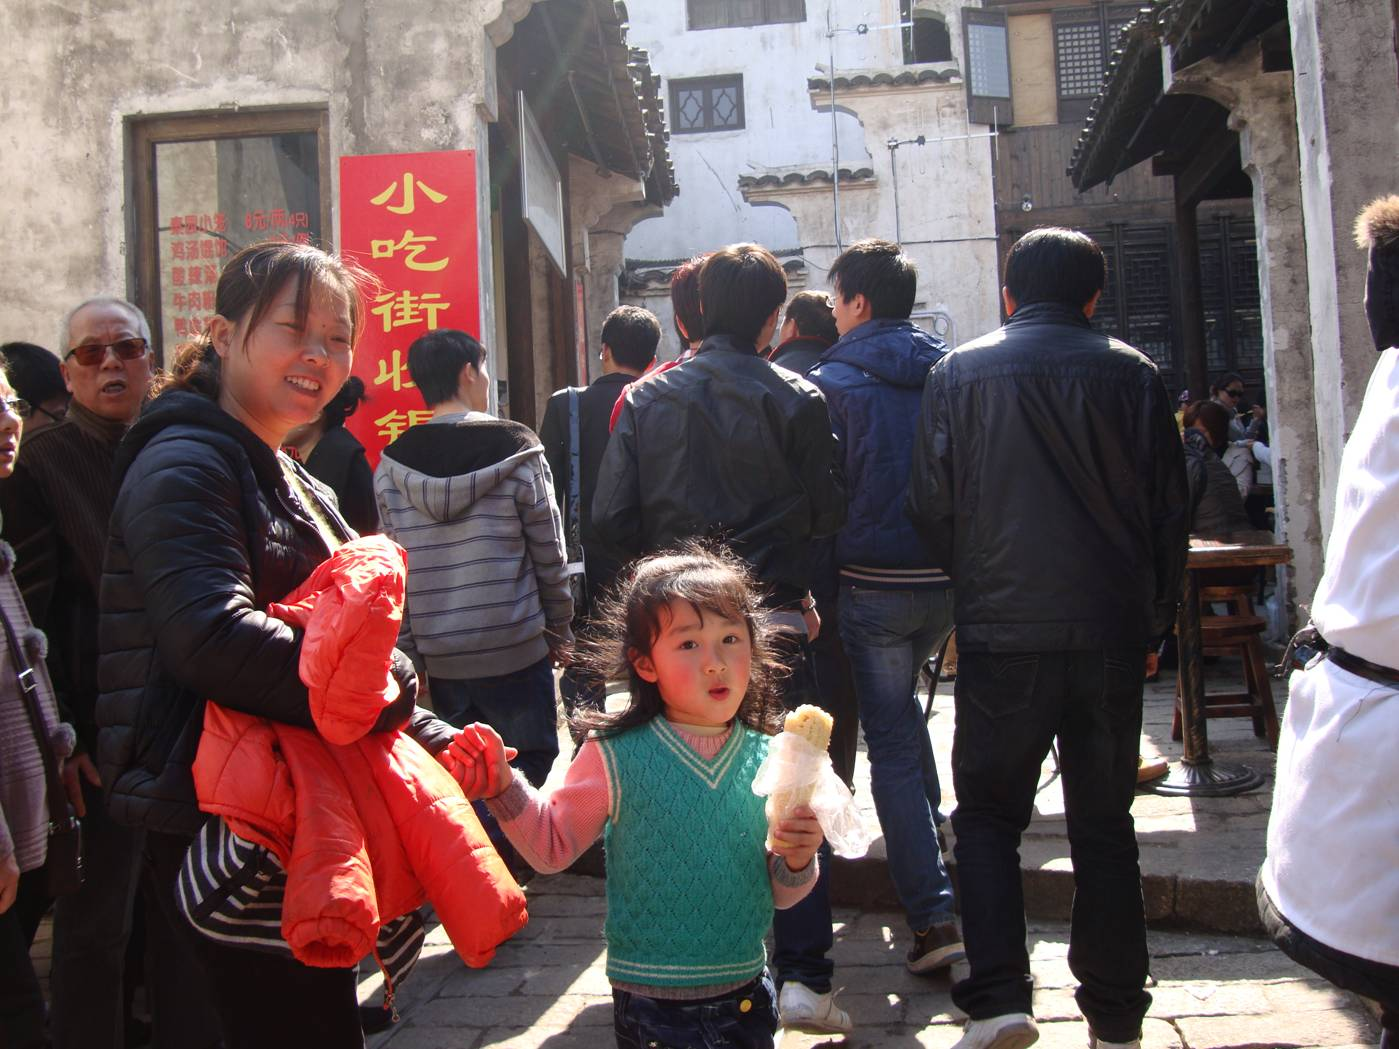 Picture:  For some kids, a foreigner is still something to comment on.  Wuxi ancient city, Wuxi, China